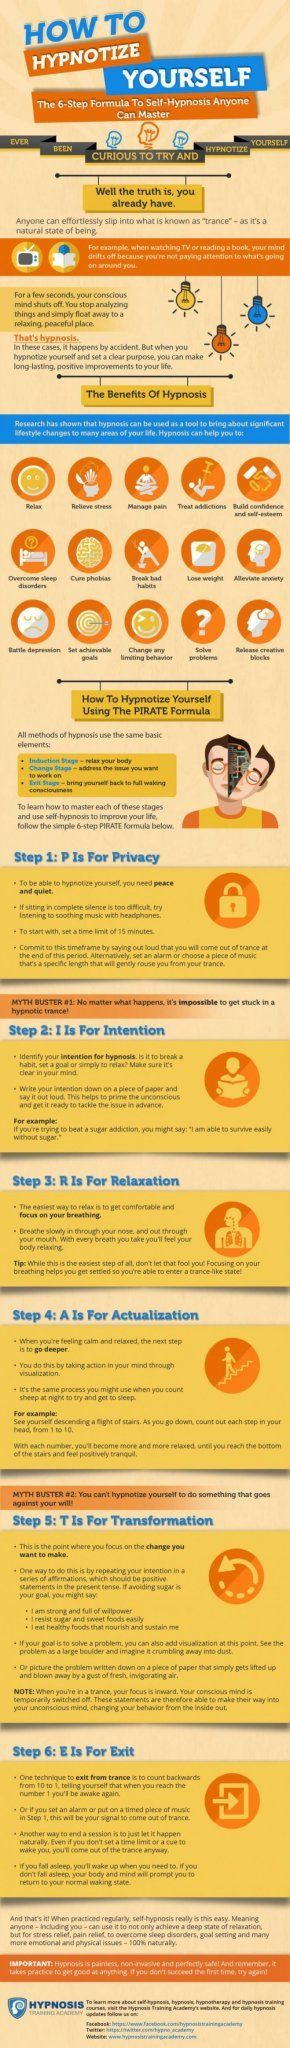 How To Do Self Hypnosis